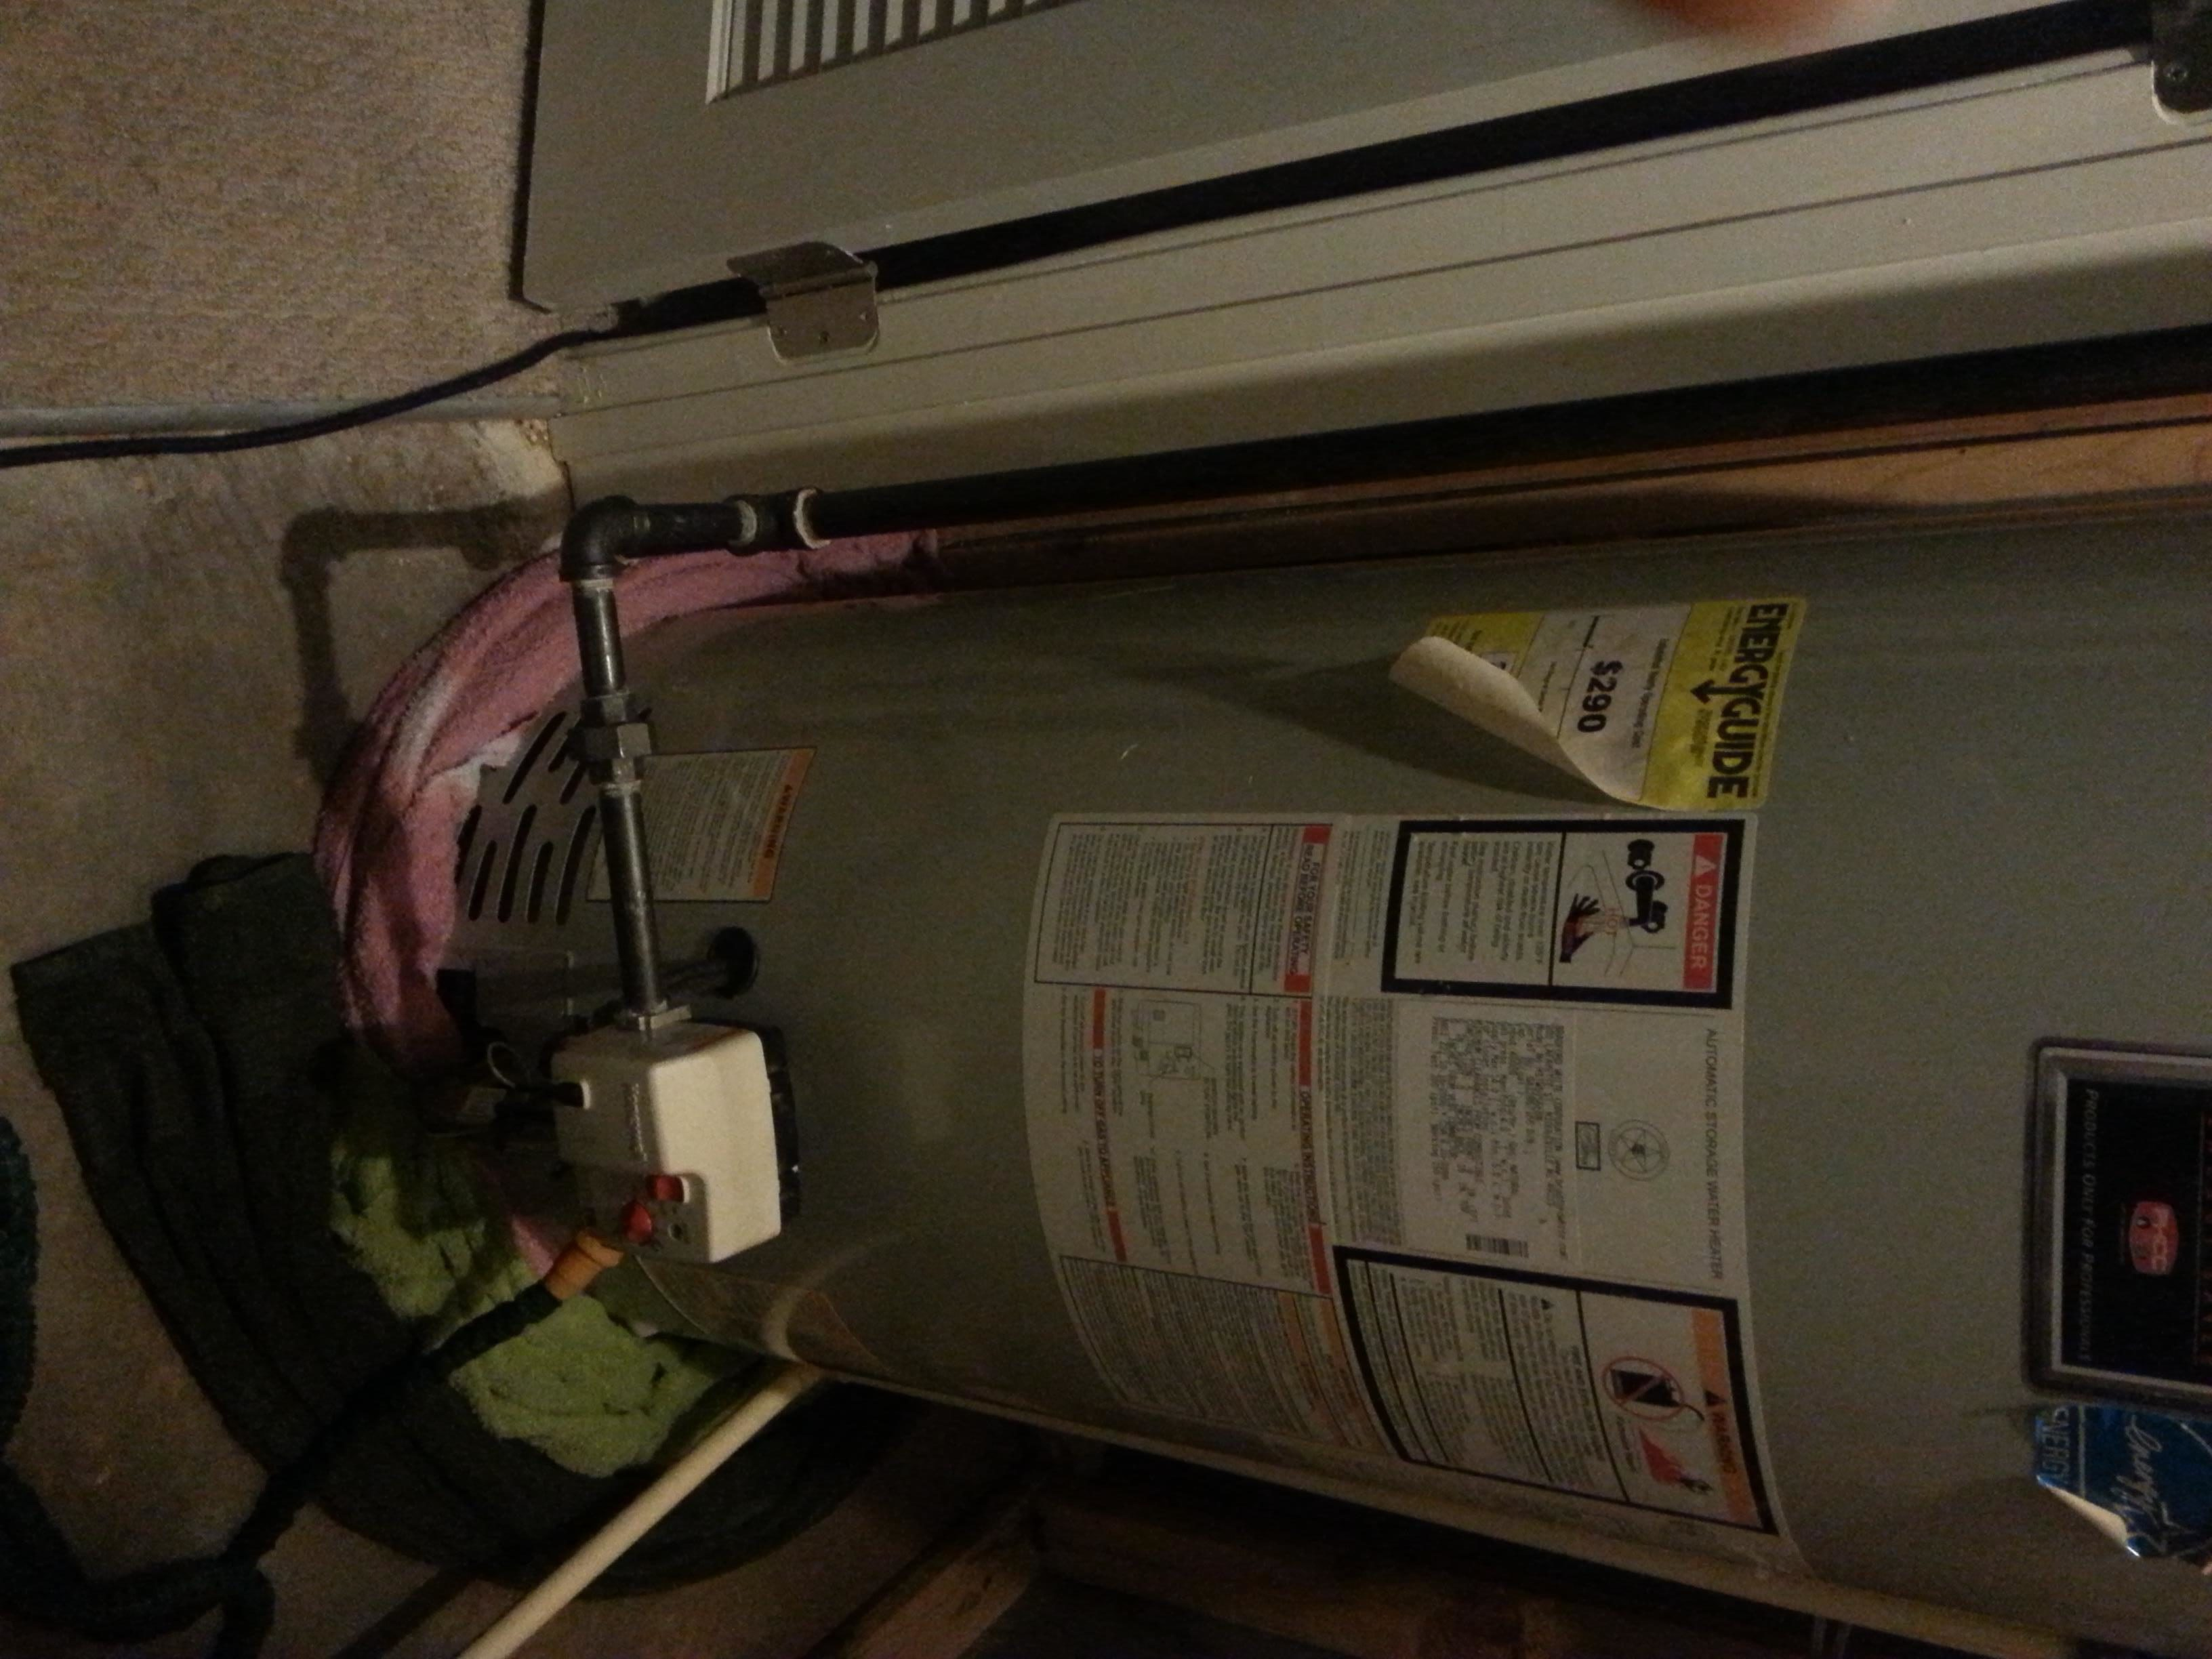 Lowboy Water Heater 50 Gallon Top 136 Reviews And Complaints About Bradford White Page 2